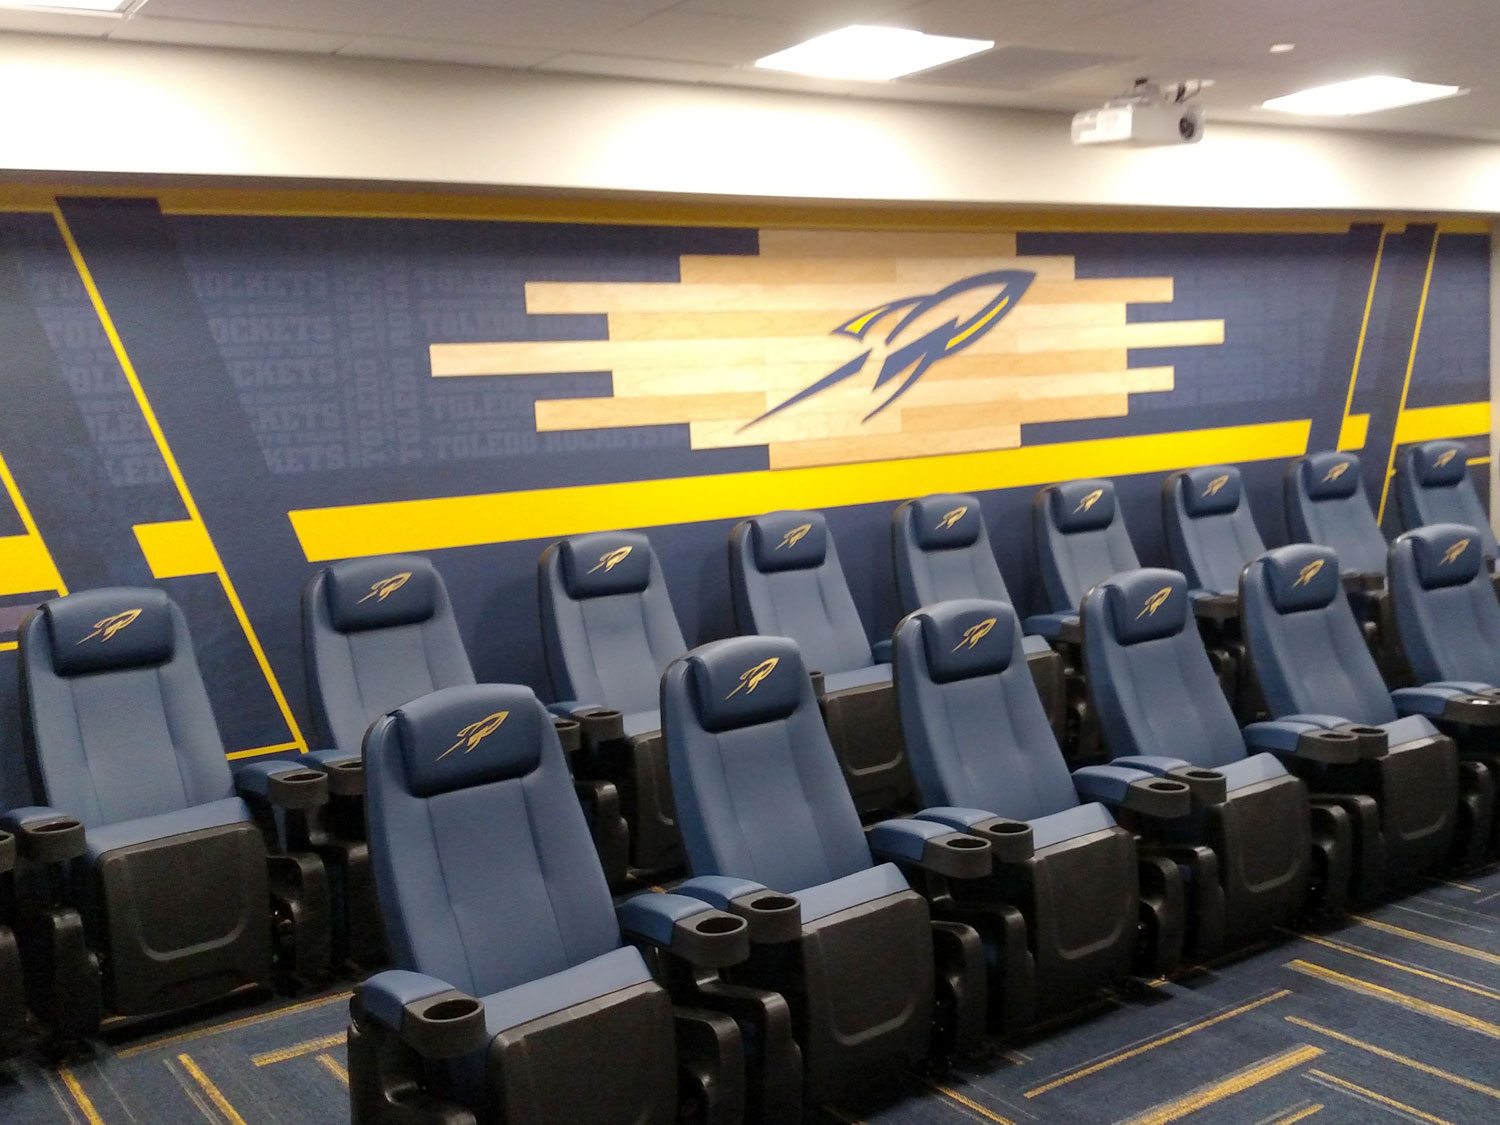 University of Toledo Press Room Wall Graphics and Seating Graphics